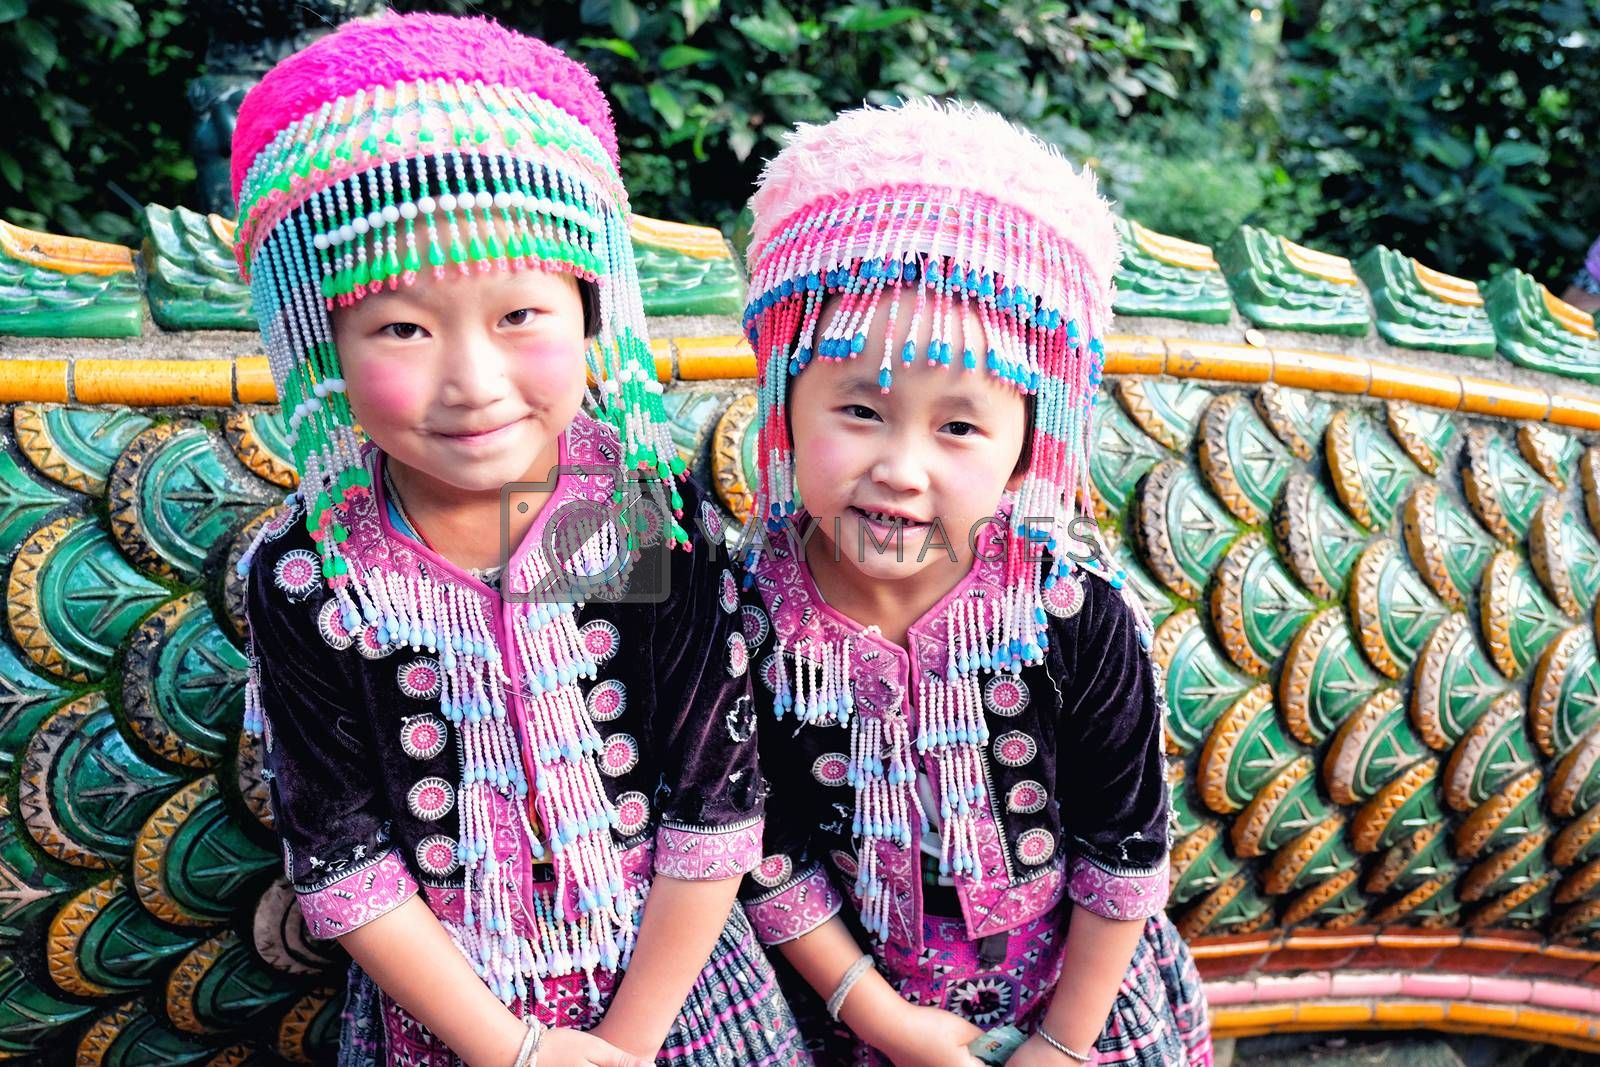 CHIANGMAI, THAILAND - NOVEMBER 13, 2016 : Little hill tribe girls waiting for tourist to take a picture with them at mythological nagas staircase to Doi Suthep Temple in Chiang Mai, Thailand